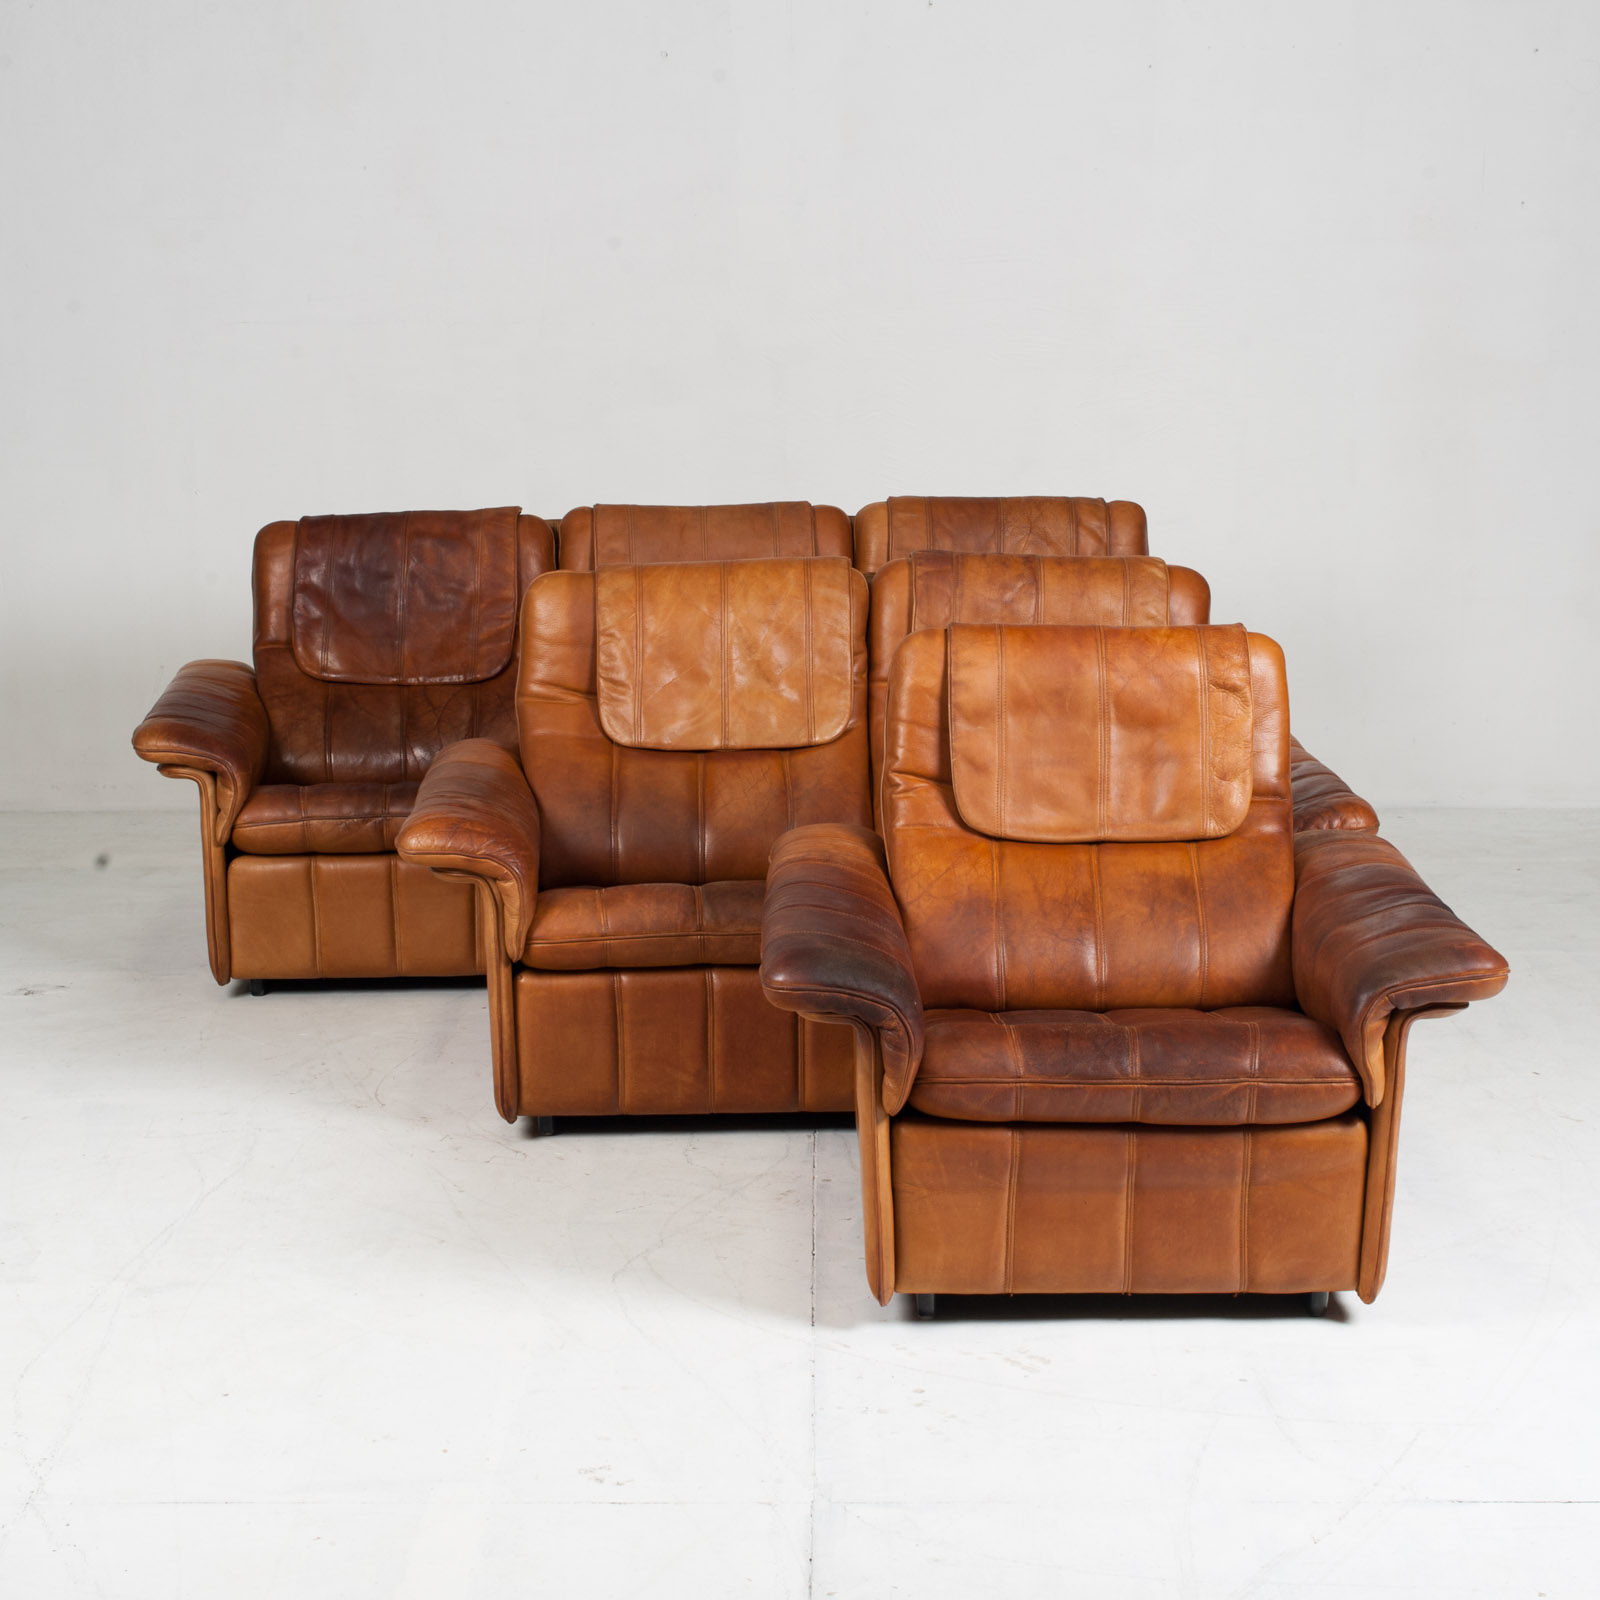 3 Seat Sofa By De Sede In Tan Leather 1970s Switzerland 17